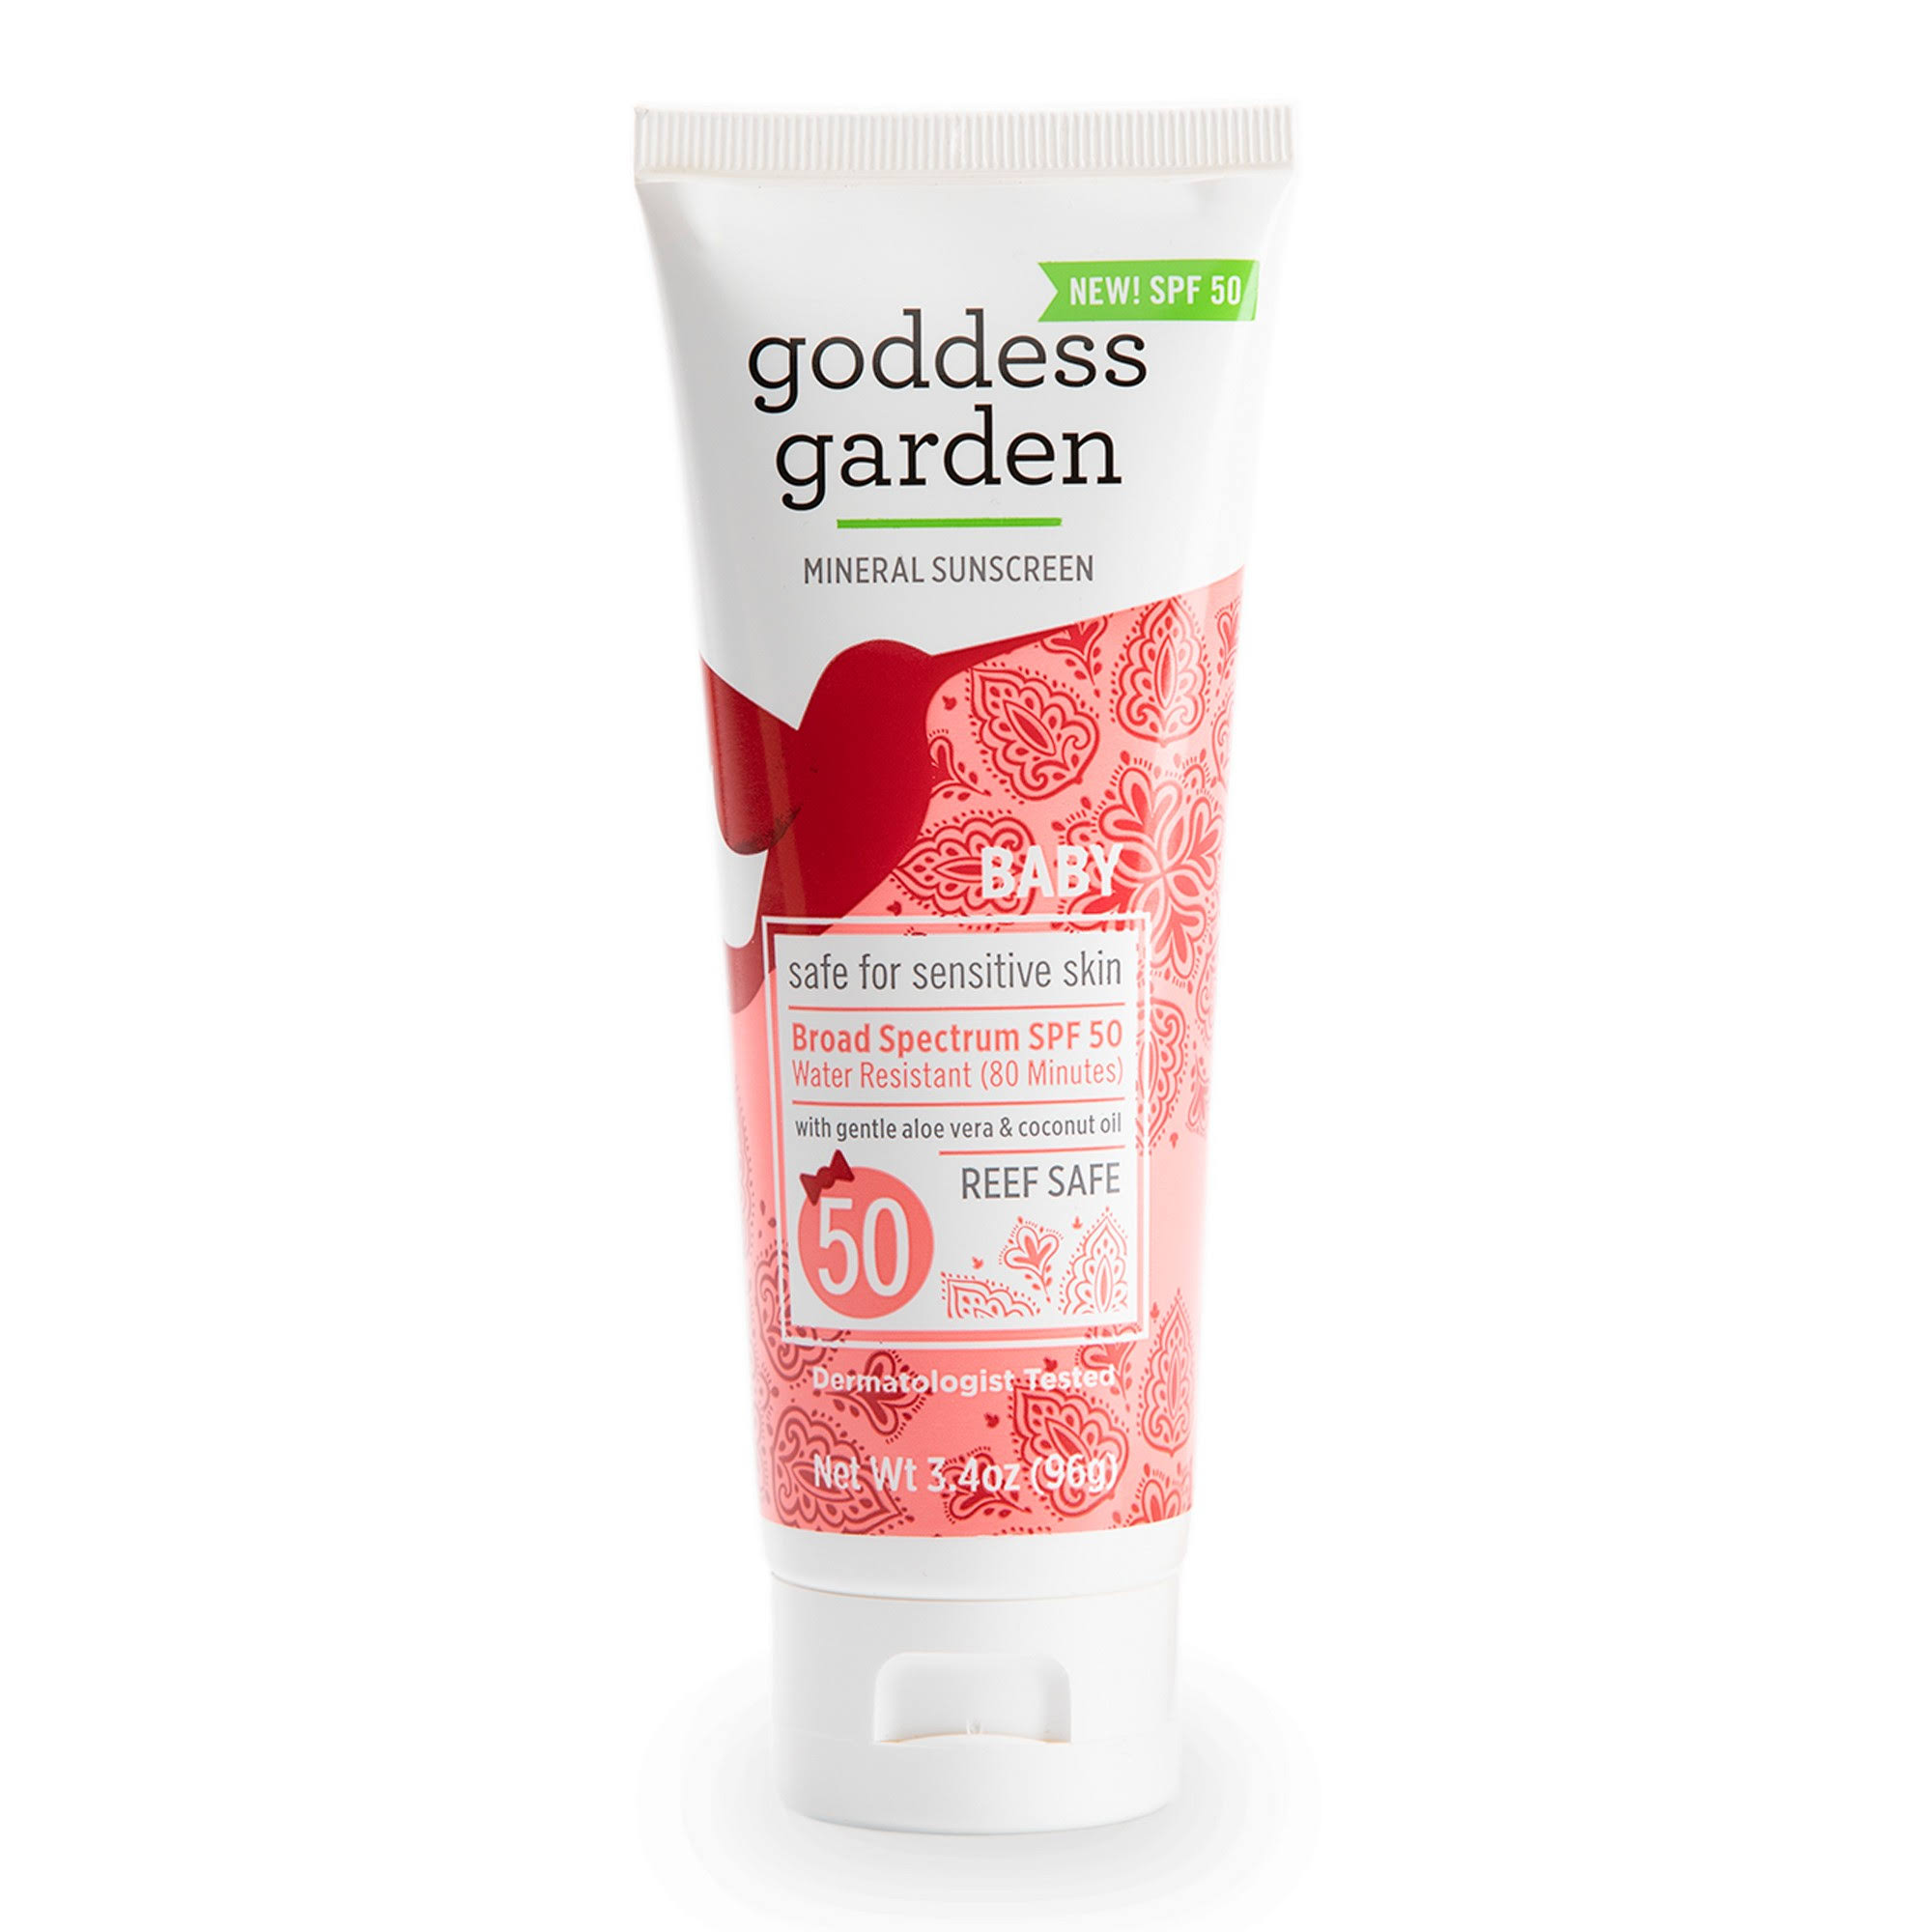 Goddess Garden Mineral Sunscreen, Broad Spectrum SPF 50, Baby - 3.4 oz